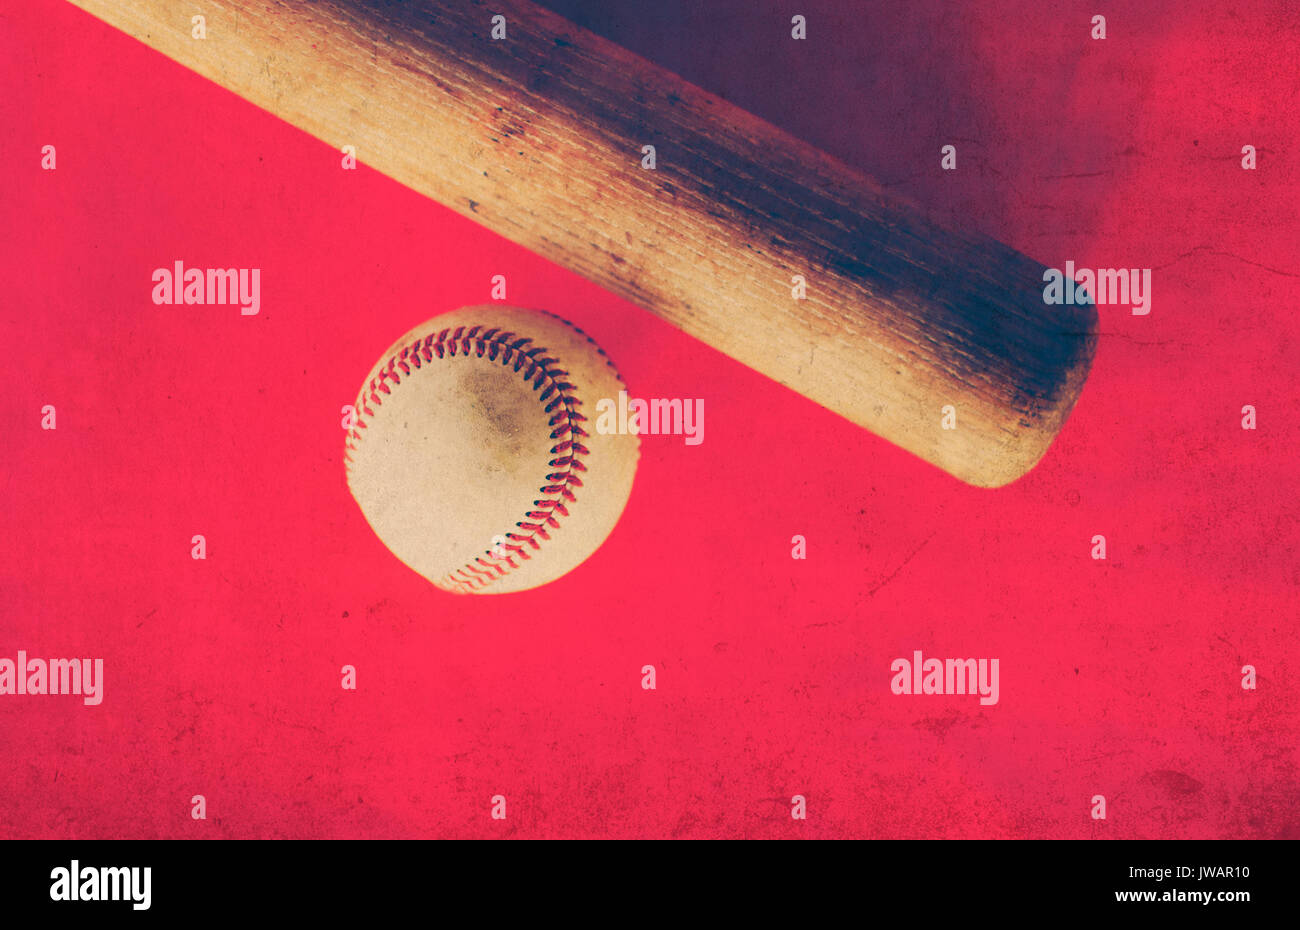 Wood baseball bat and game ball against red grunge background. - Stock Image